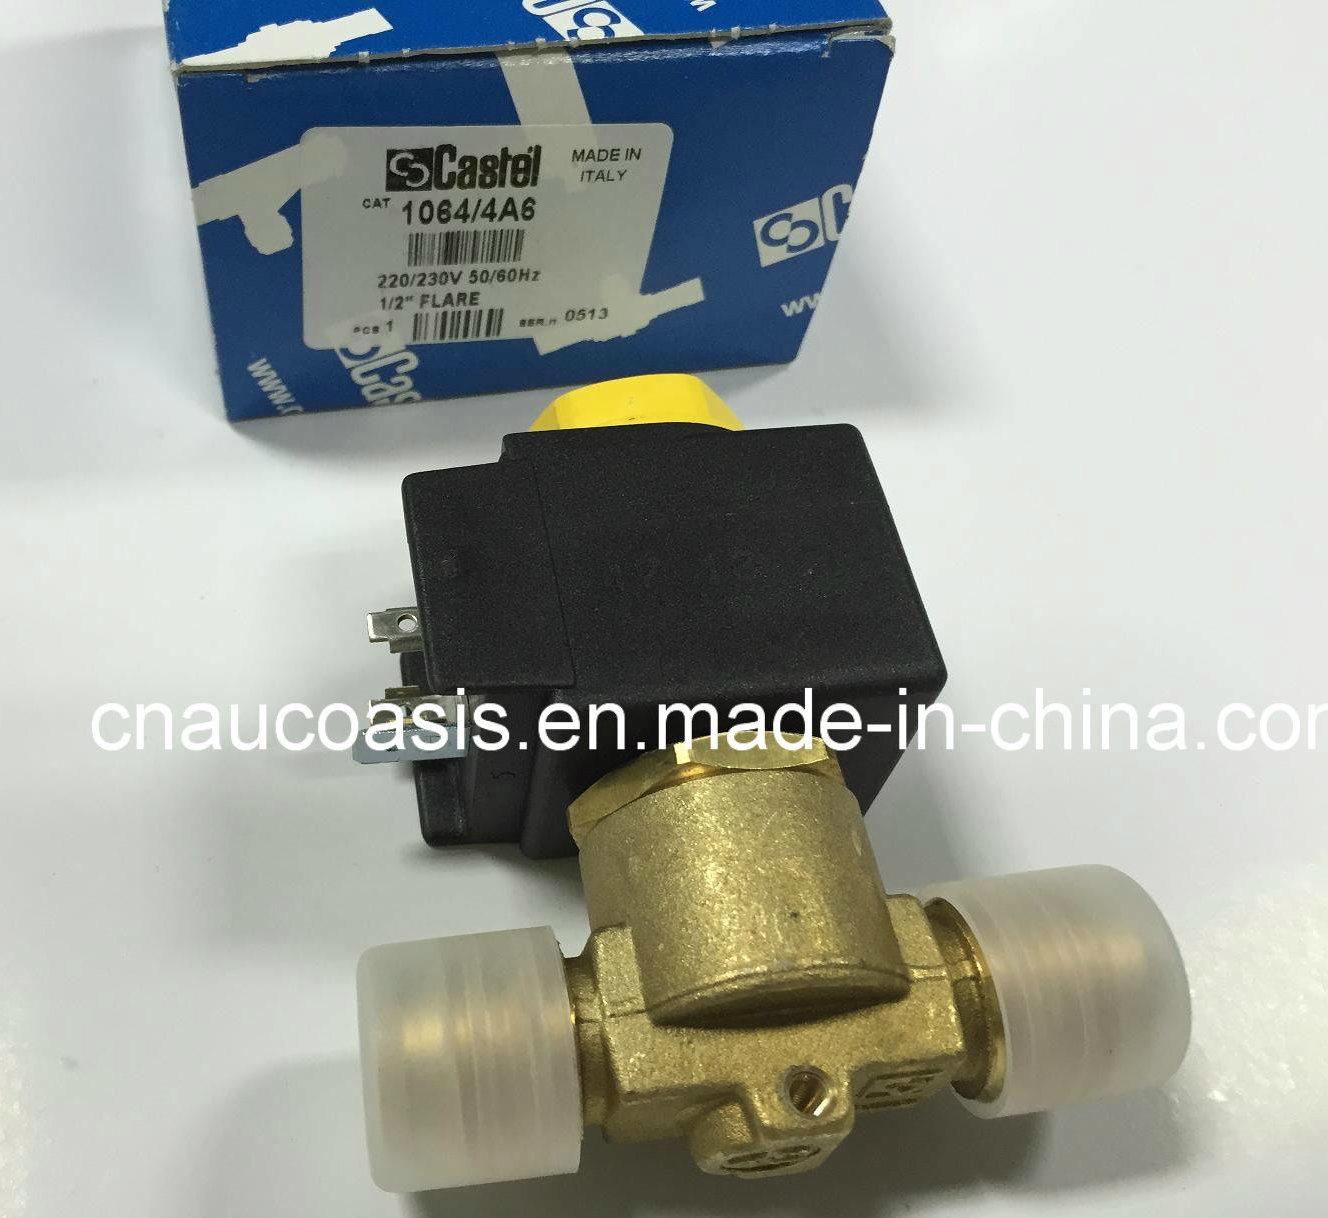 Oasis Motor Company >> China 1064/3A6, 1064/4A6 Castel Solenoid Valve for Refrigeration System Control - China Castel ...